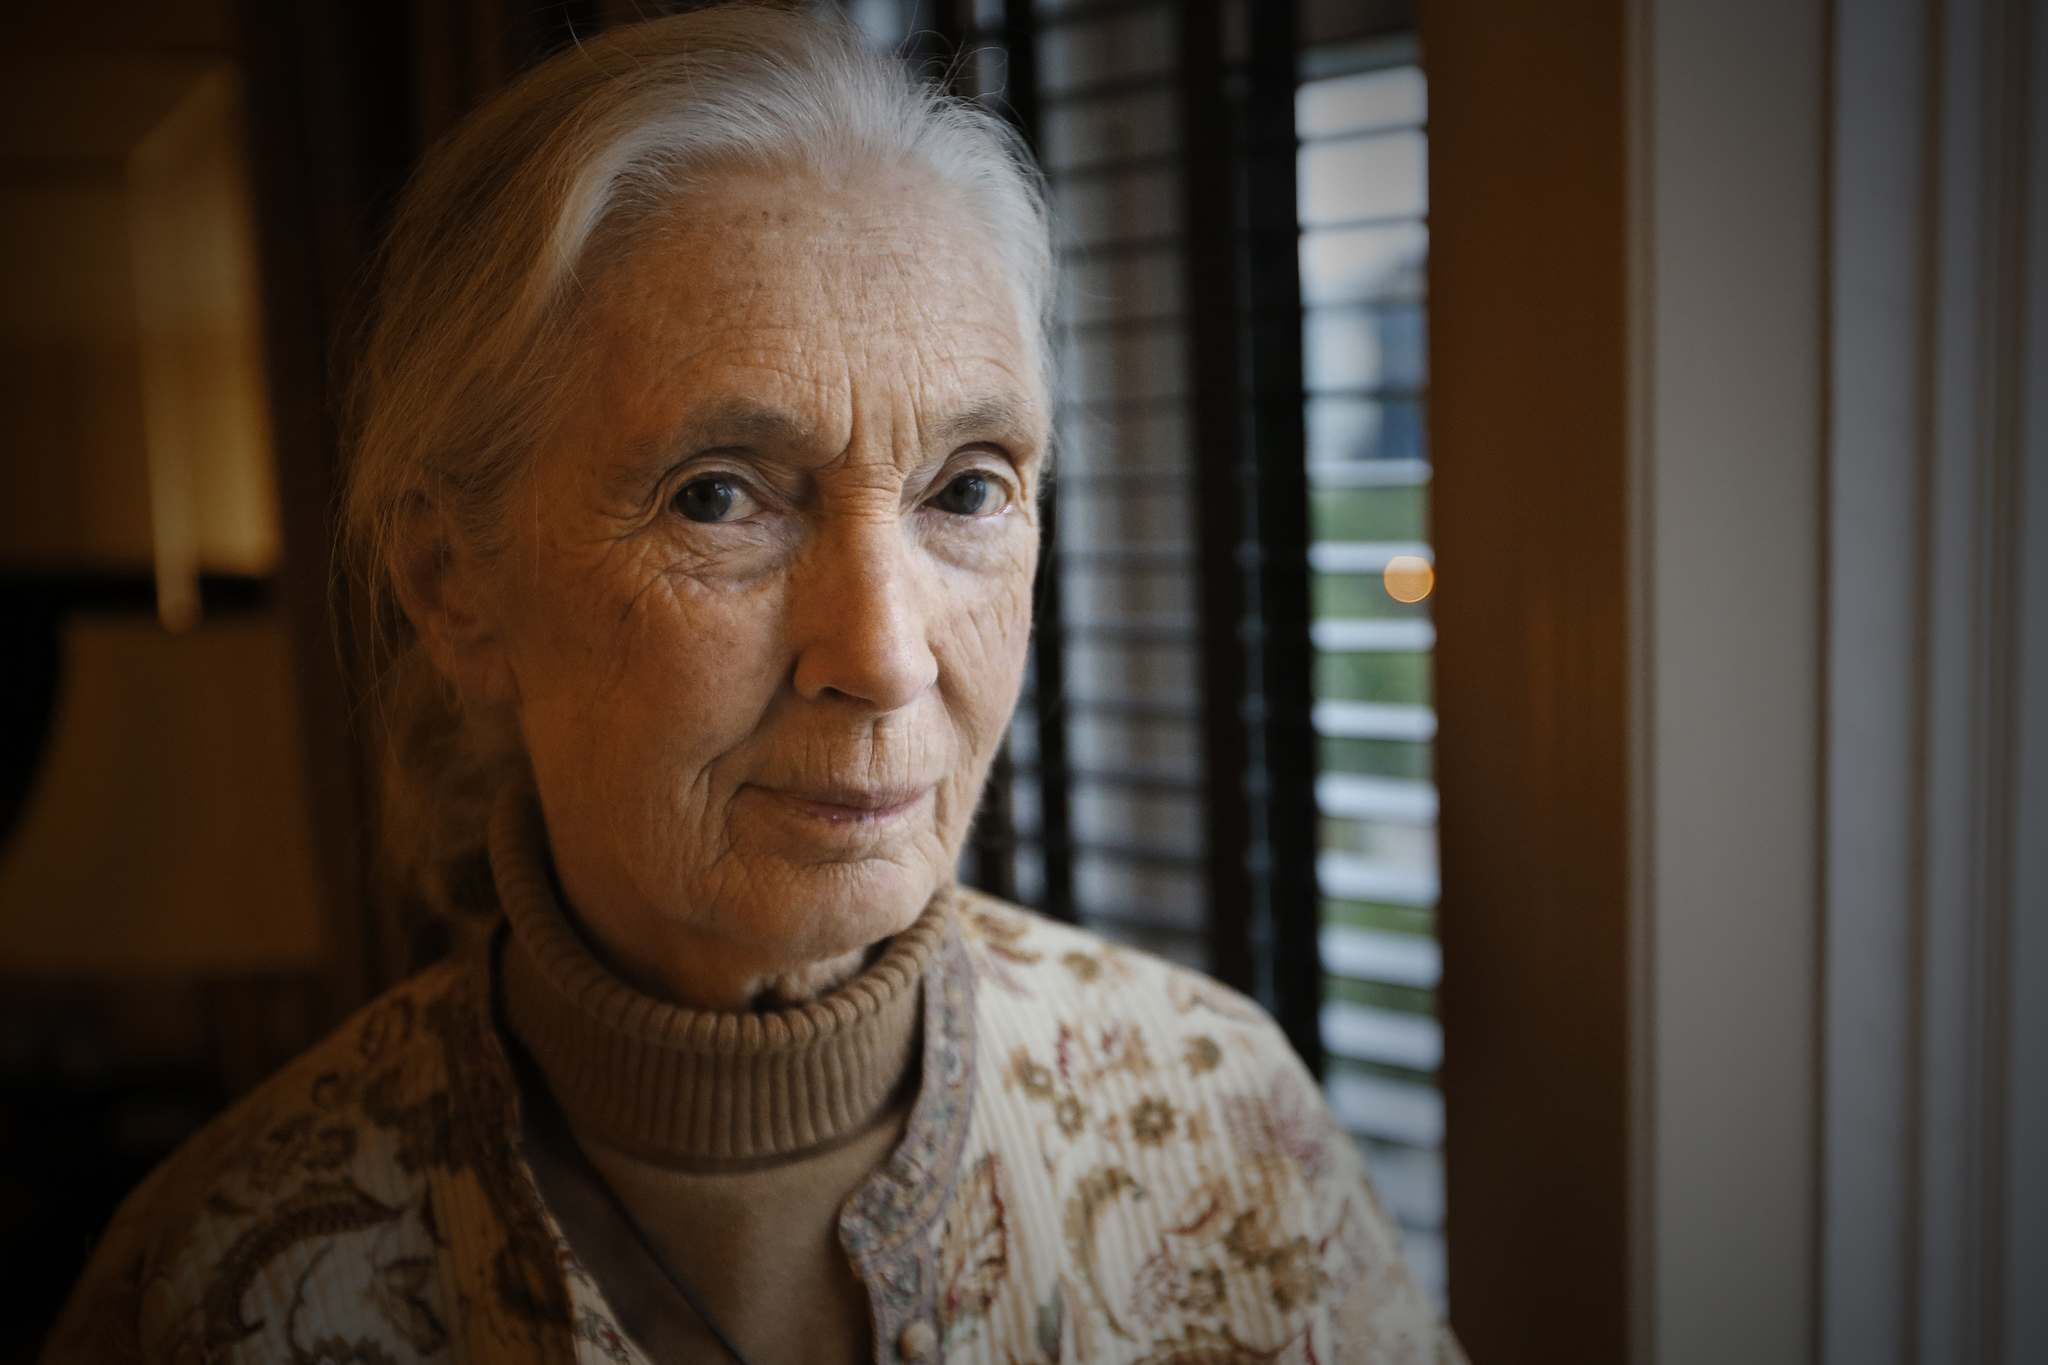 JOHN WOODS / WINNIPEG FREE PRESS FILES</p><p>Jane Goodall will receive an honorary doctorate from the University of Winnipeg.</p>